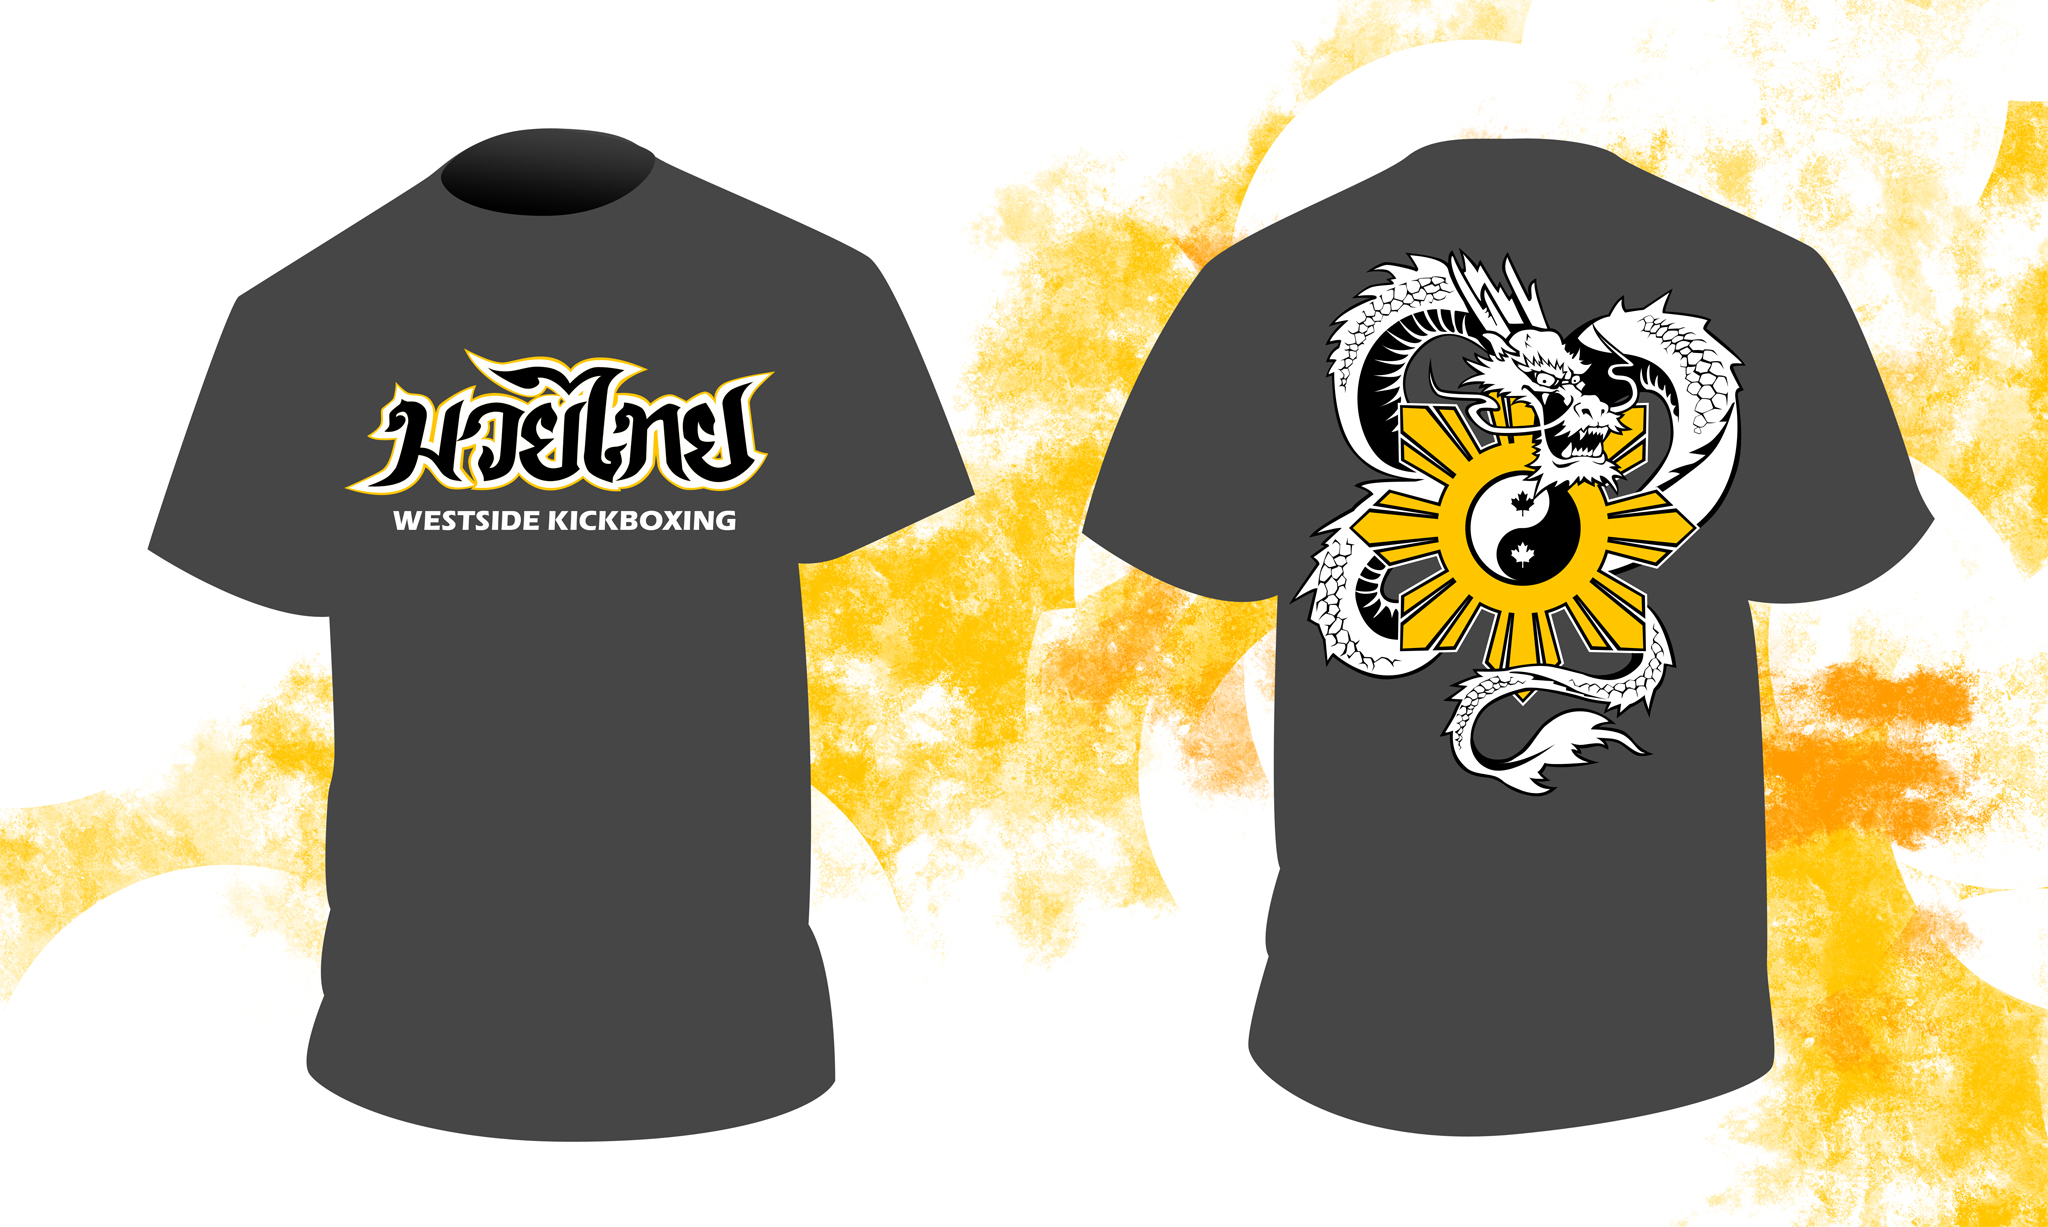 Westside kickboxing t-shirt design